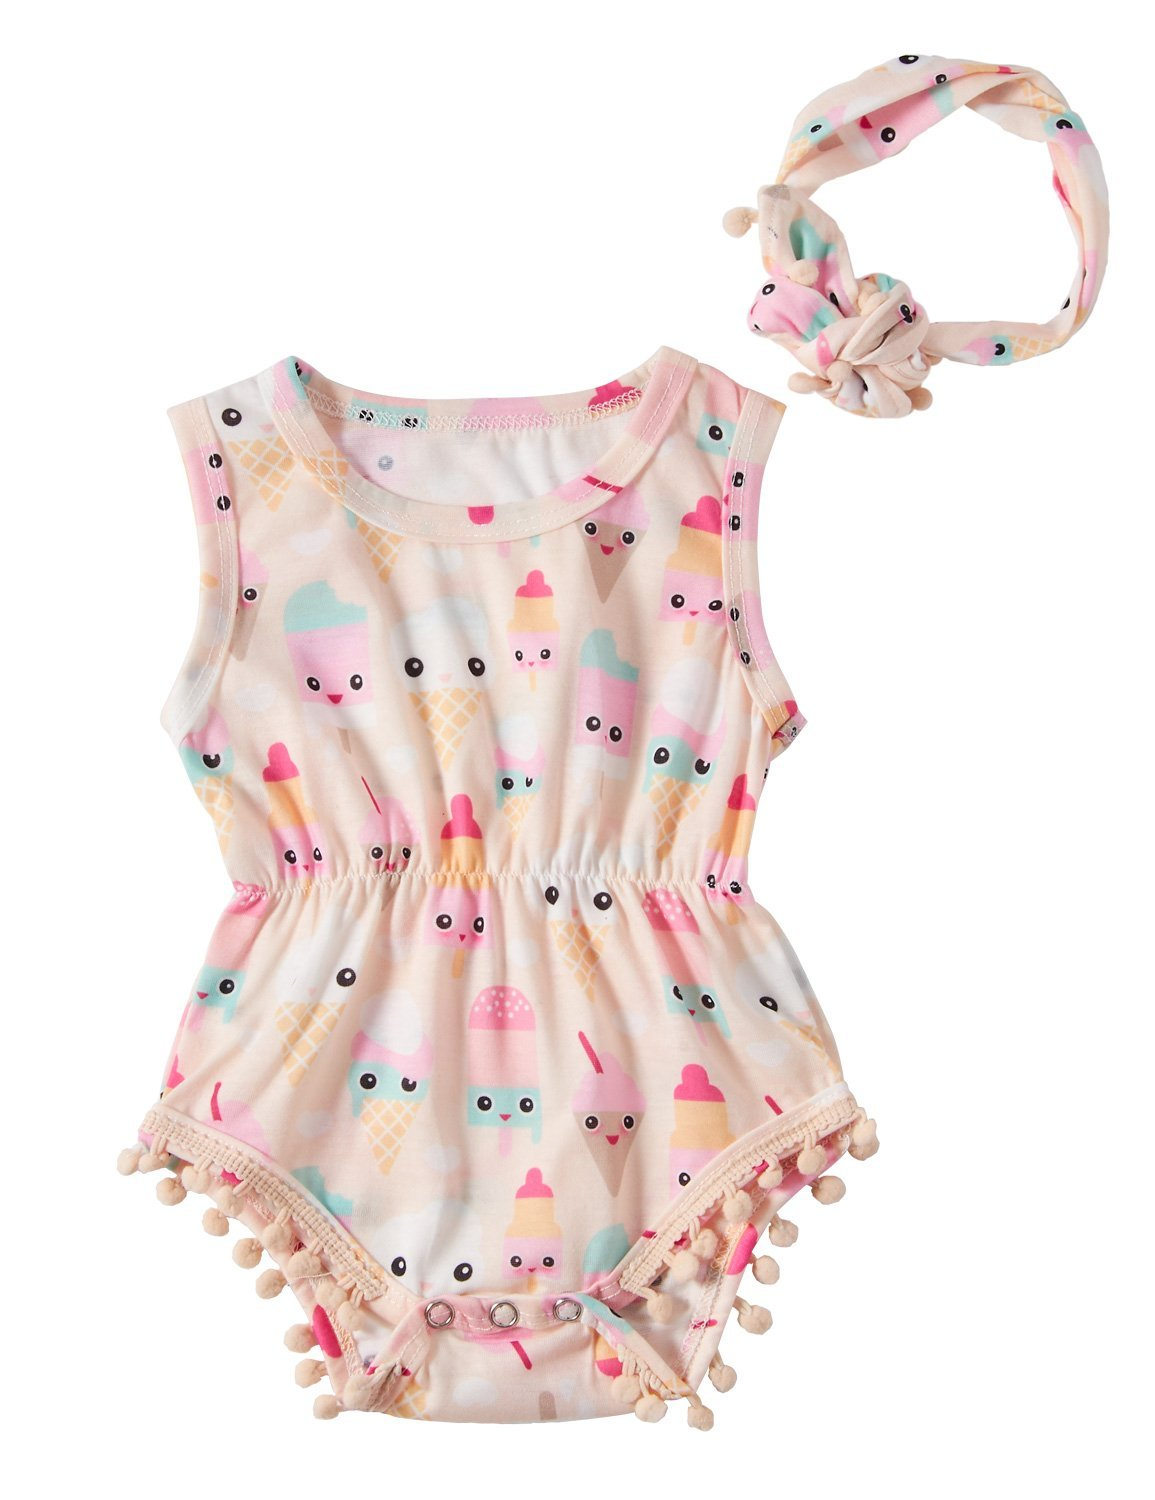 RAISEVERN 12-18Month Baby Girls Ice Cream Print Ruffles Romper Bodysuit with Headband Summer Outfits